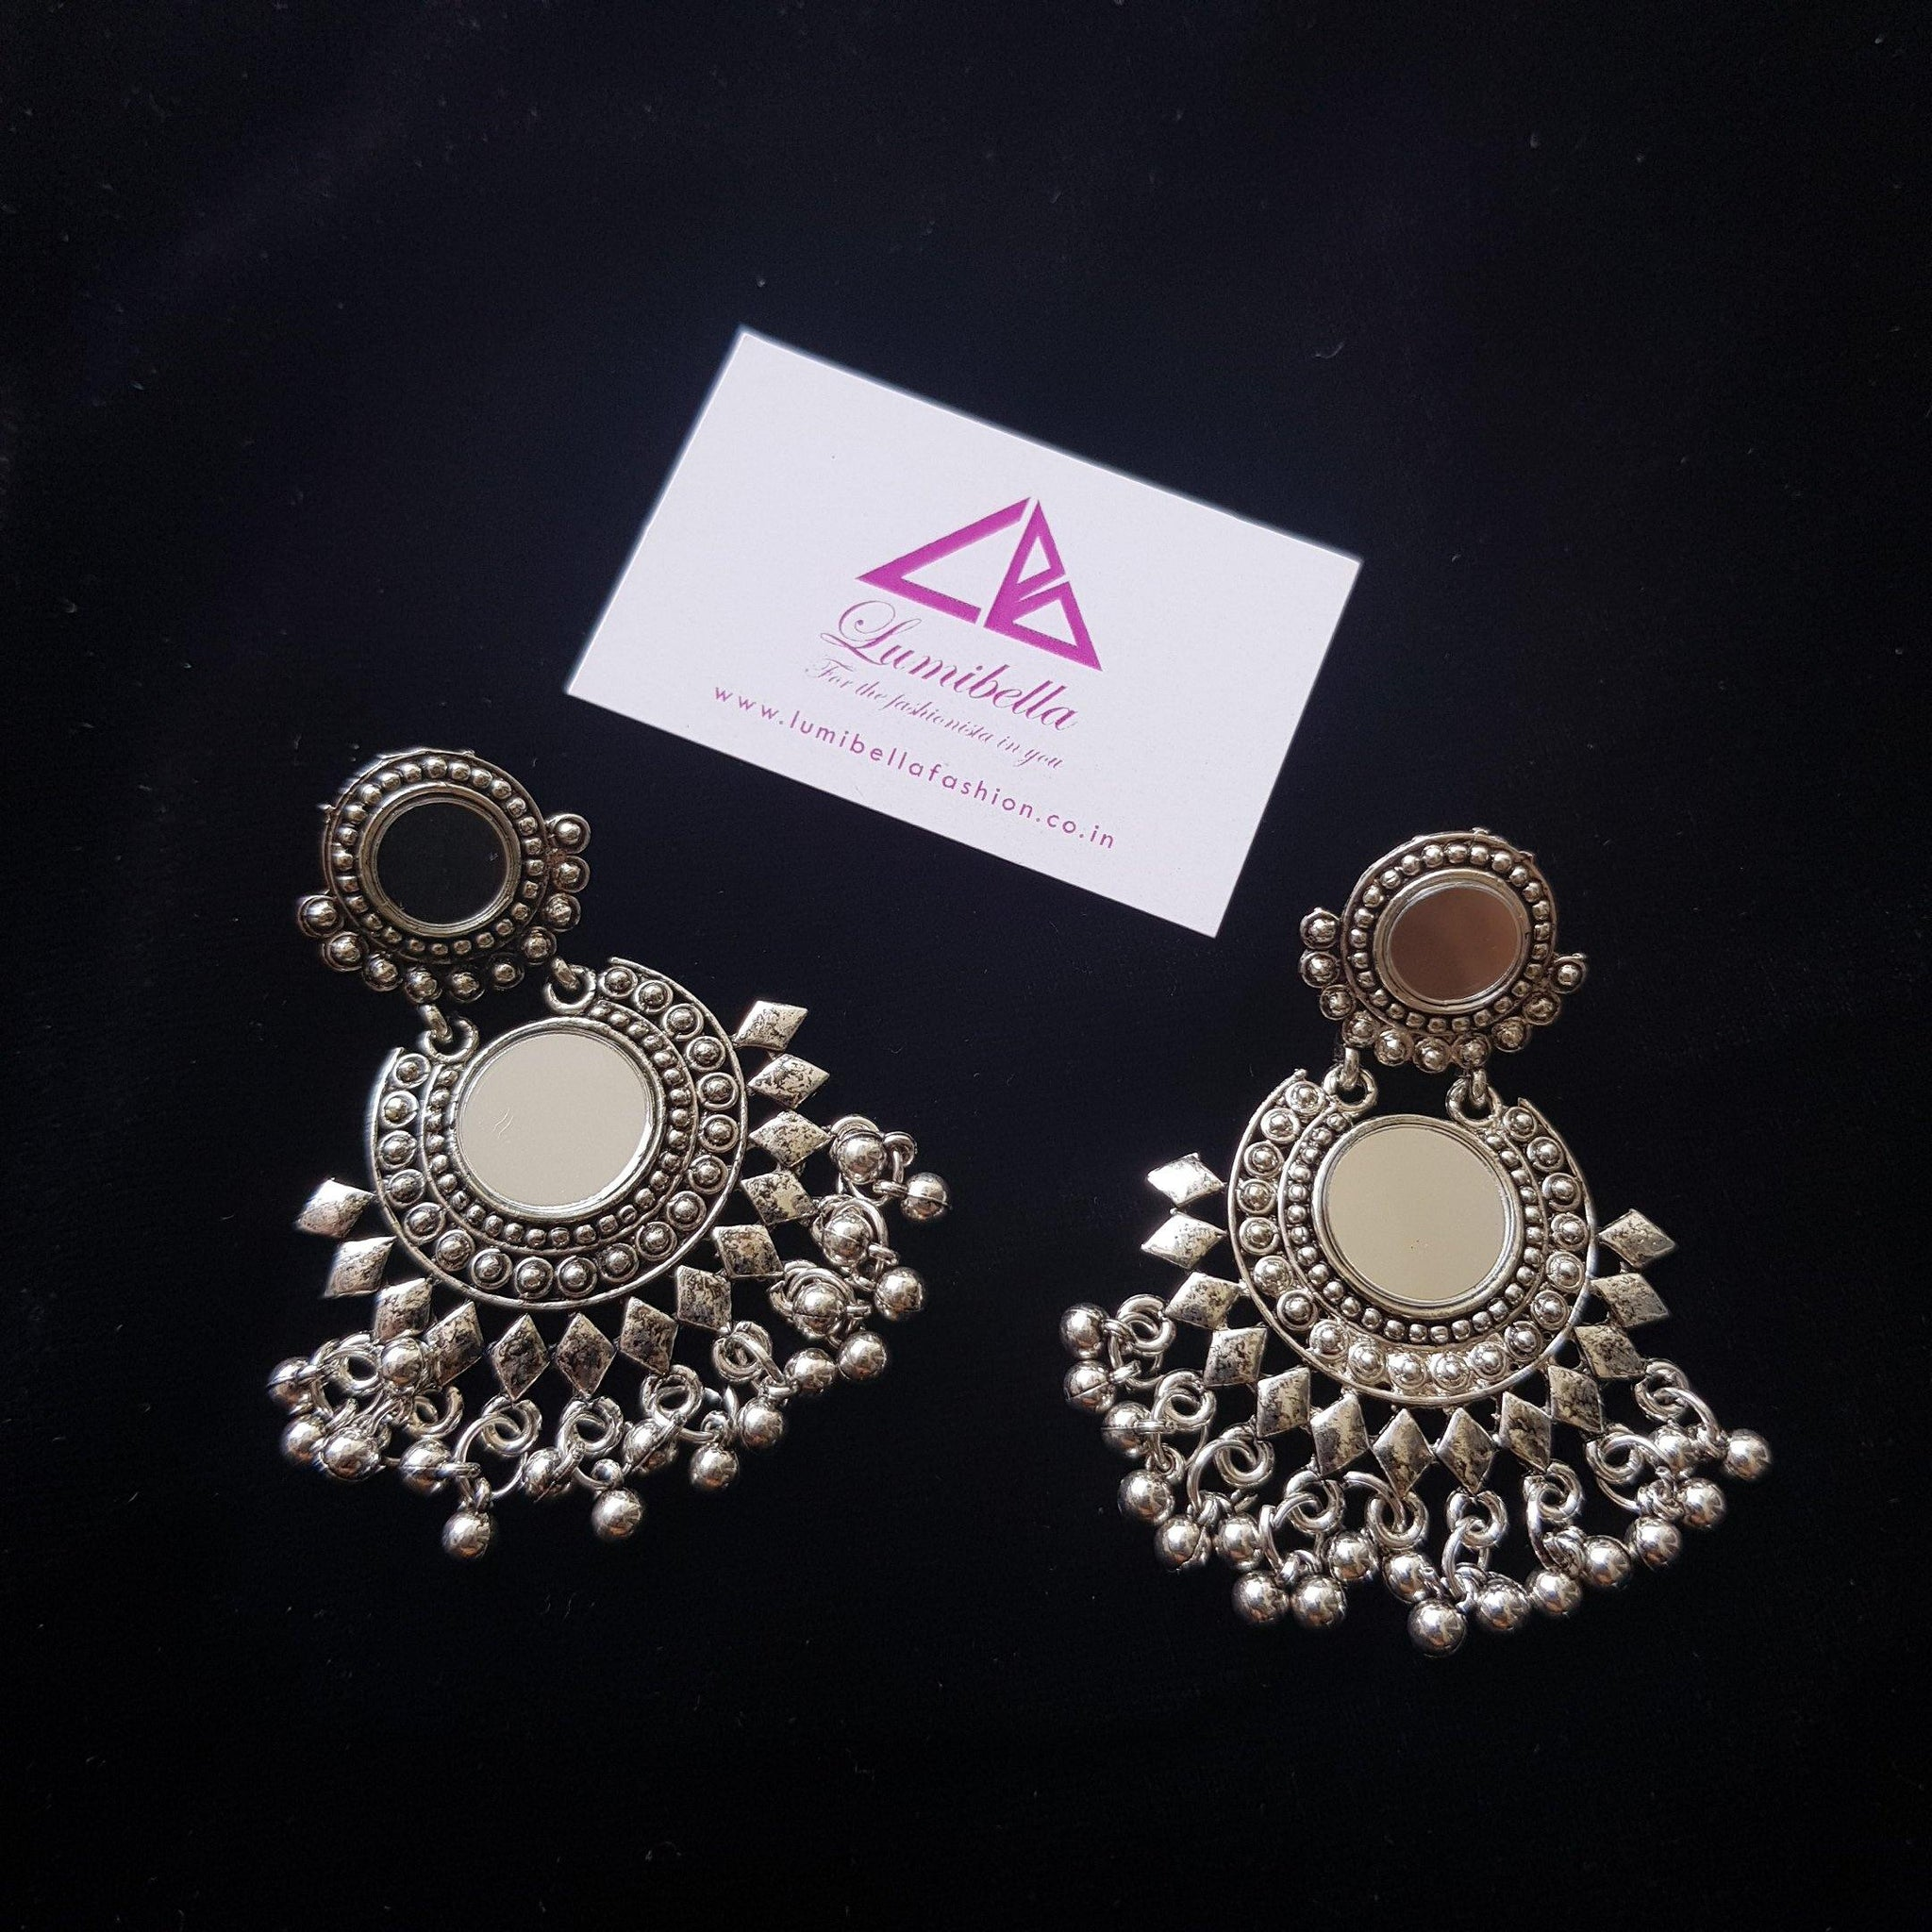 German silver floral style earrings